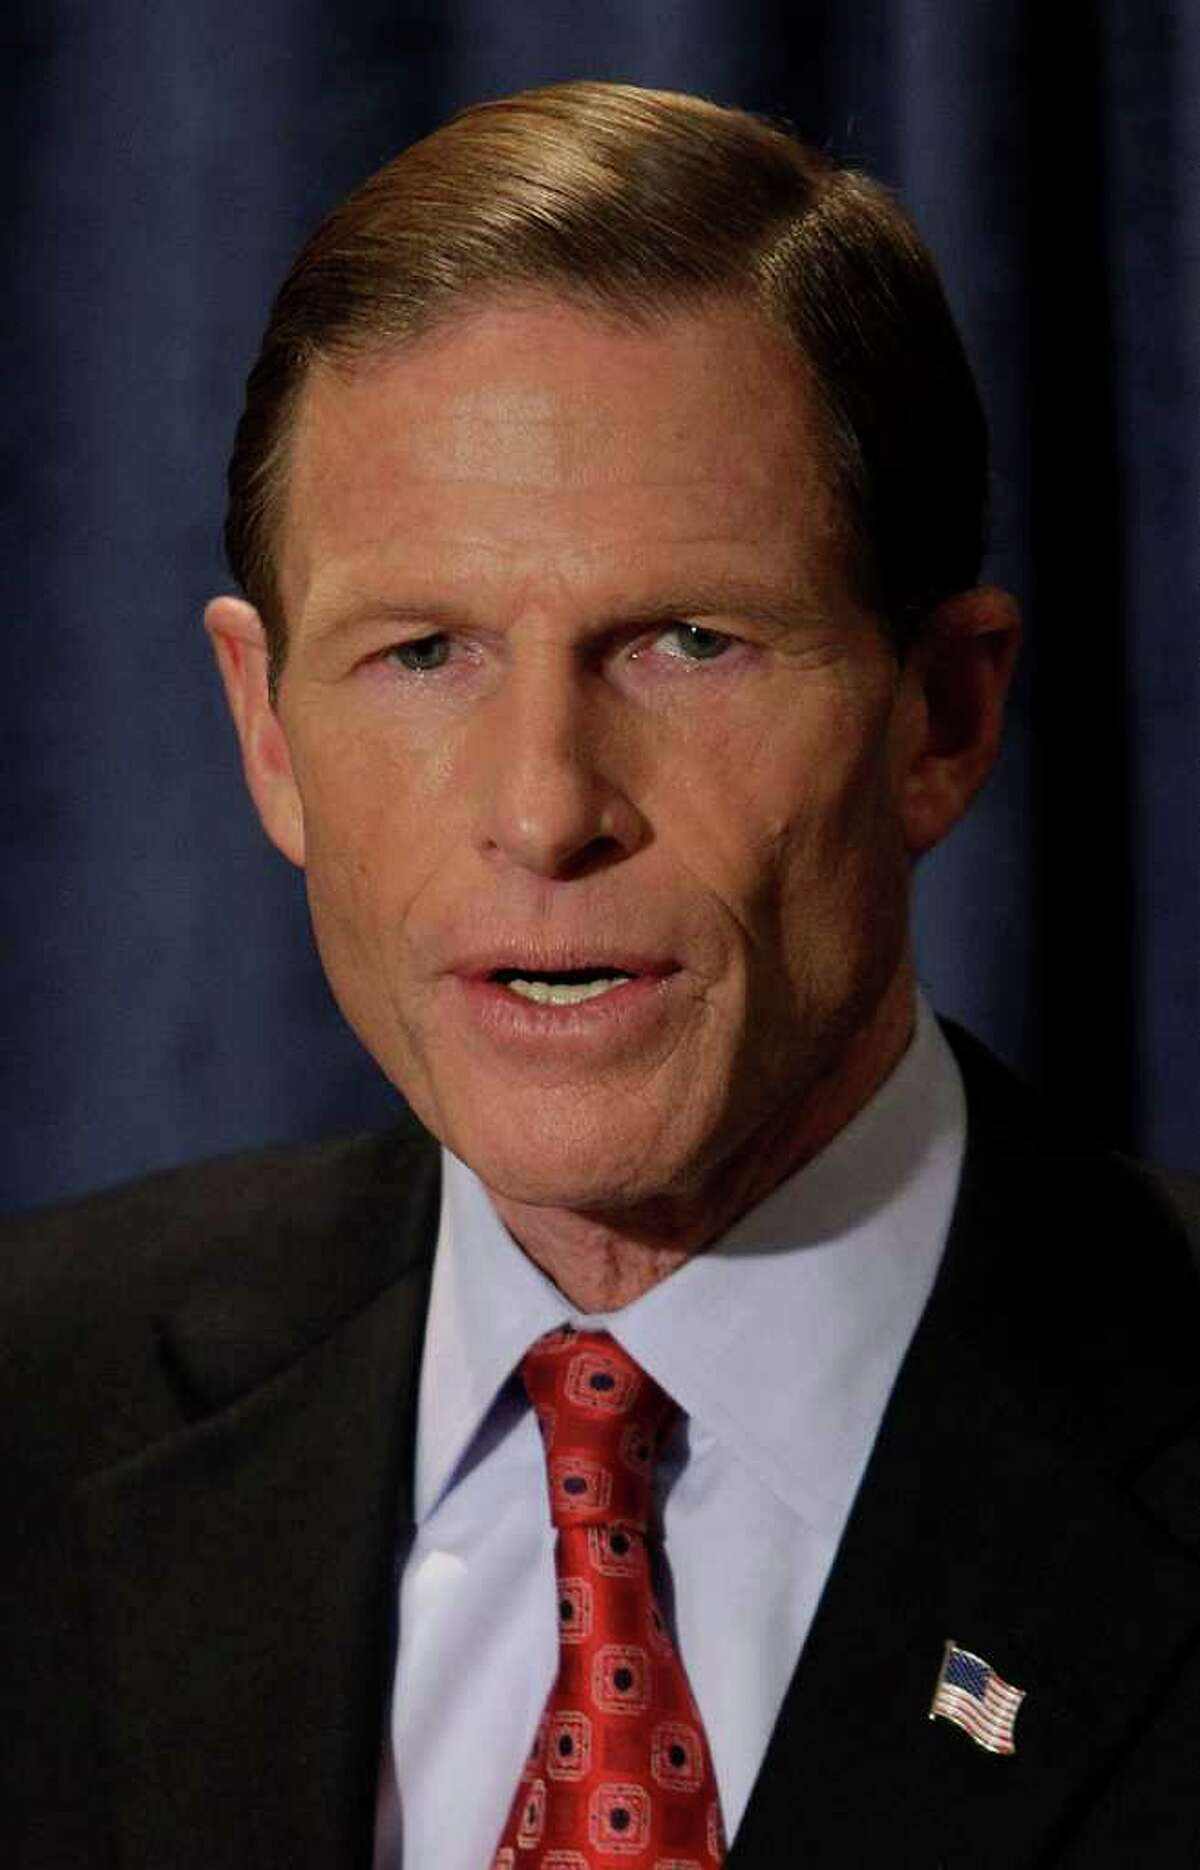 Connecticut Attorney General and newly elected Sen. Richard Blumenthal, D-CT., smiles as he answers a reporters question during a media availability the day after his victory in Hartford, Wednesday, Nov. 3, 2010. (AP Photo/Stephan Savoia)